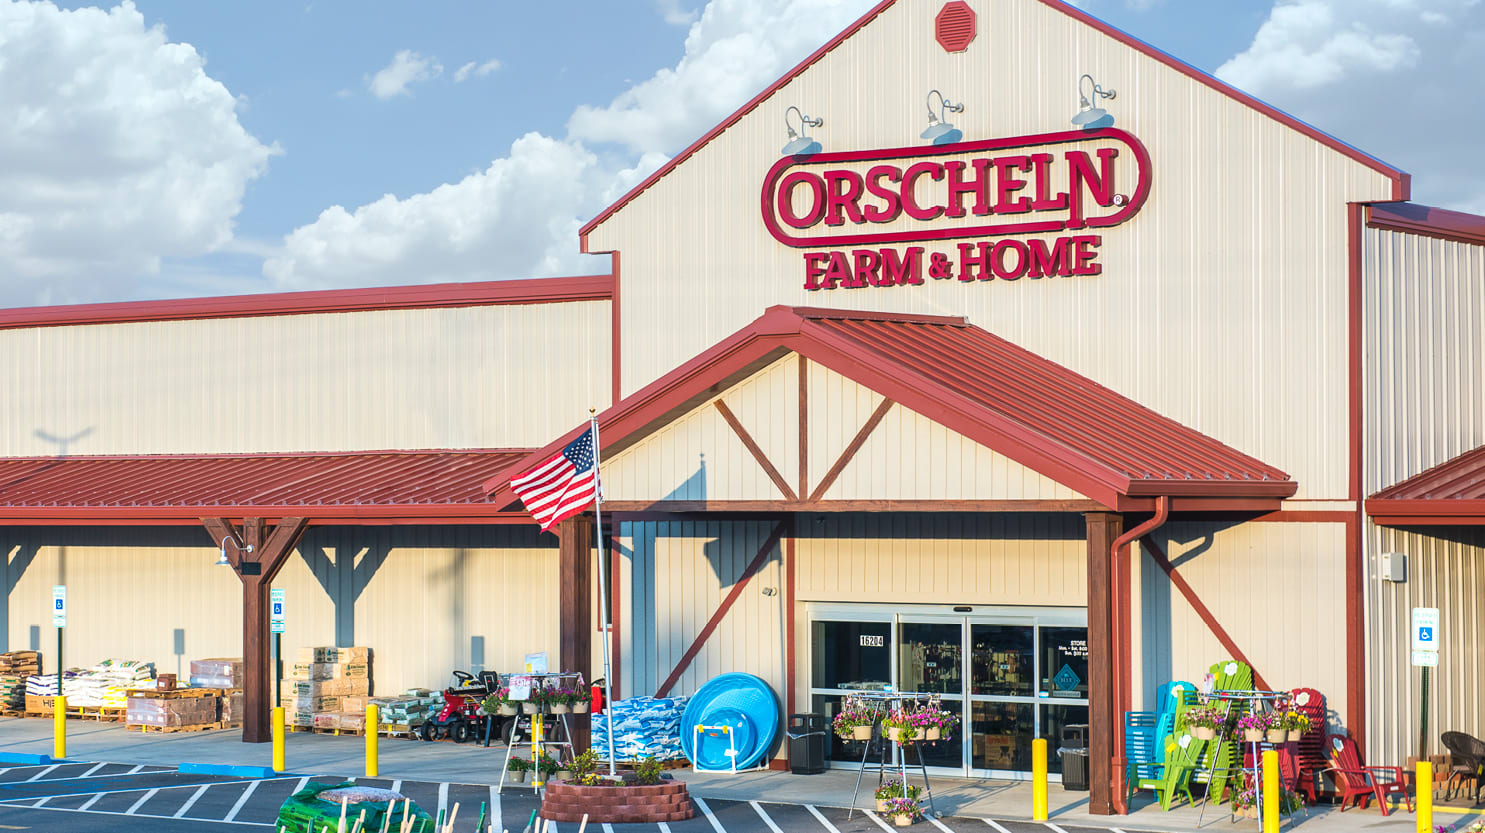 Front view of Orscheln Farm & Home Store in Nowata, Oklahoma 74048